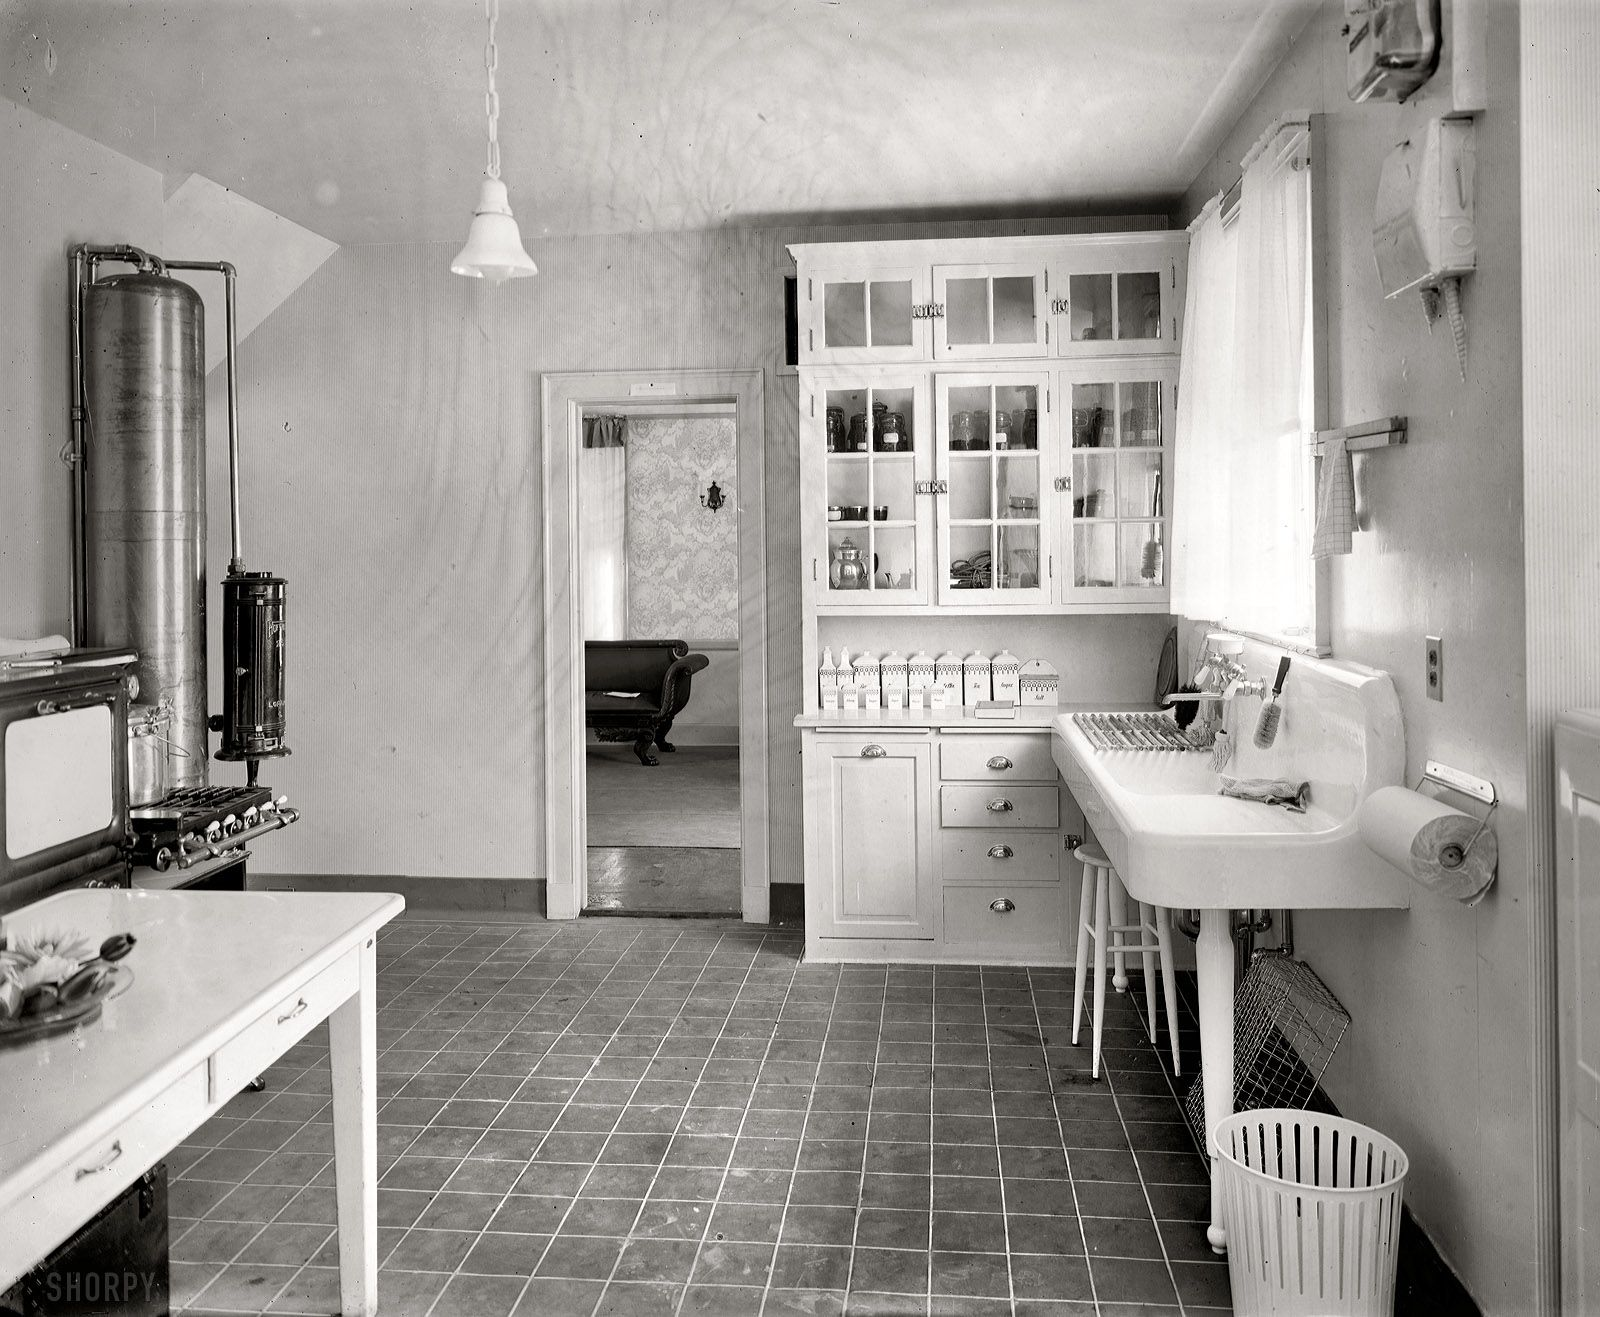 Smart Ways To Outfit The Kitchen (1910